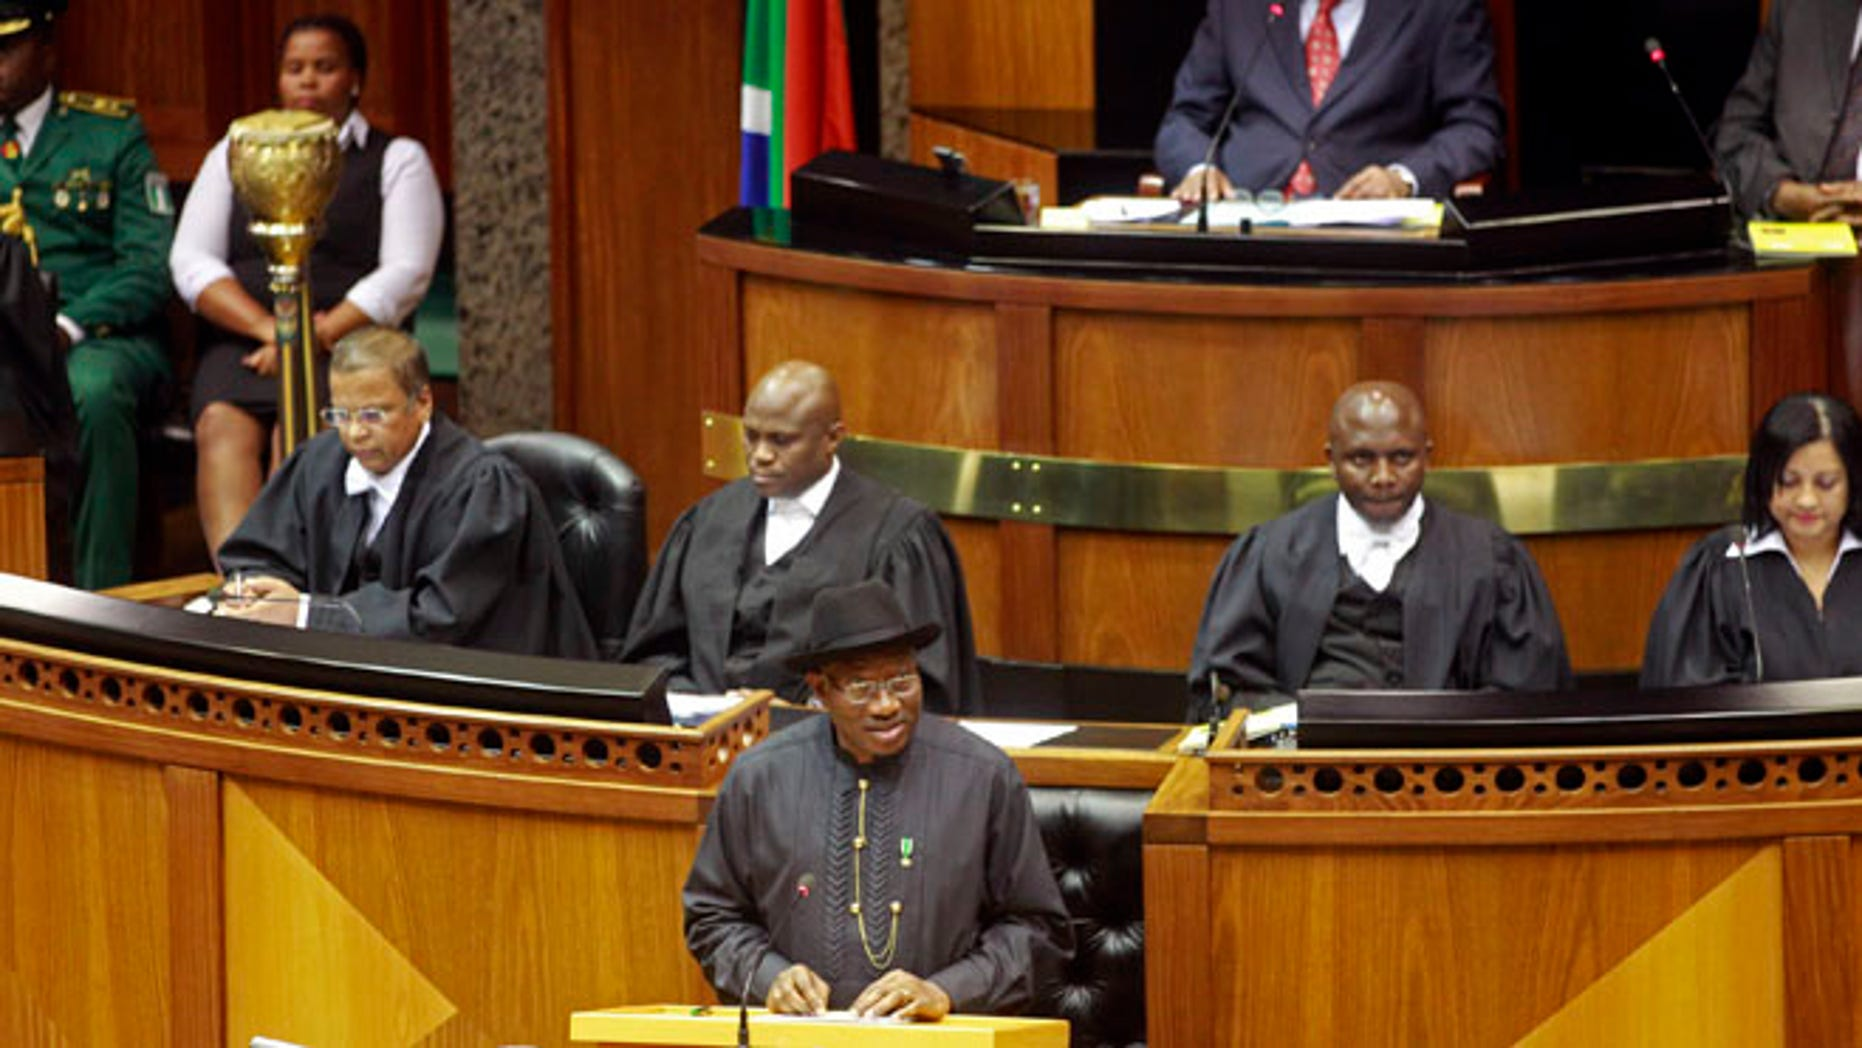 May 7, 2013: Nigerian President Goodluck Jonathan, center, makes a speech in the South African Parliament in Cape Town.